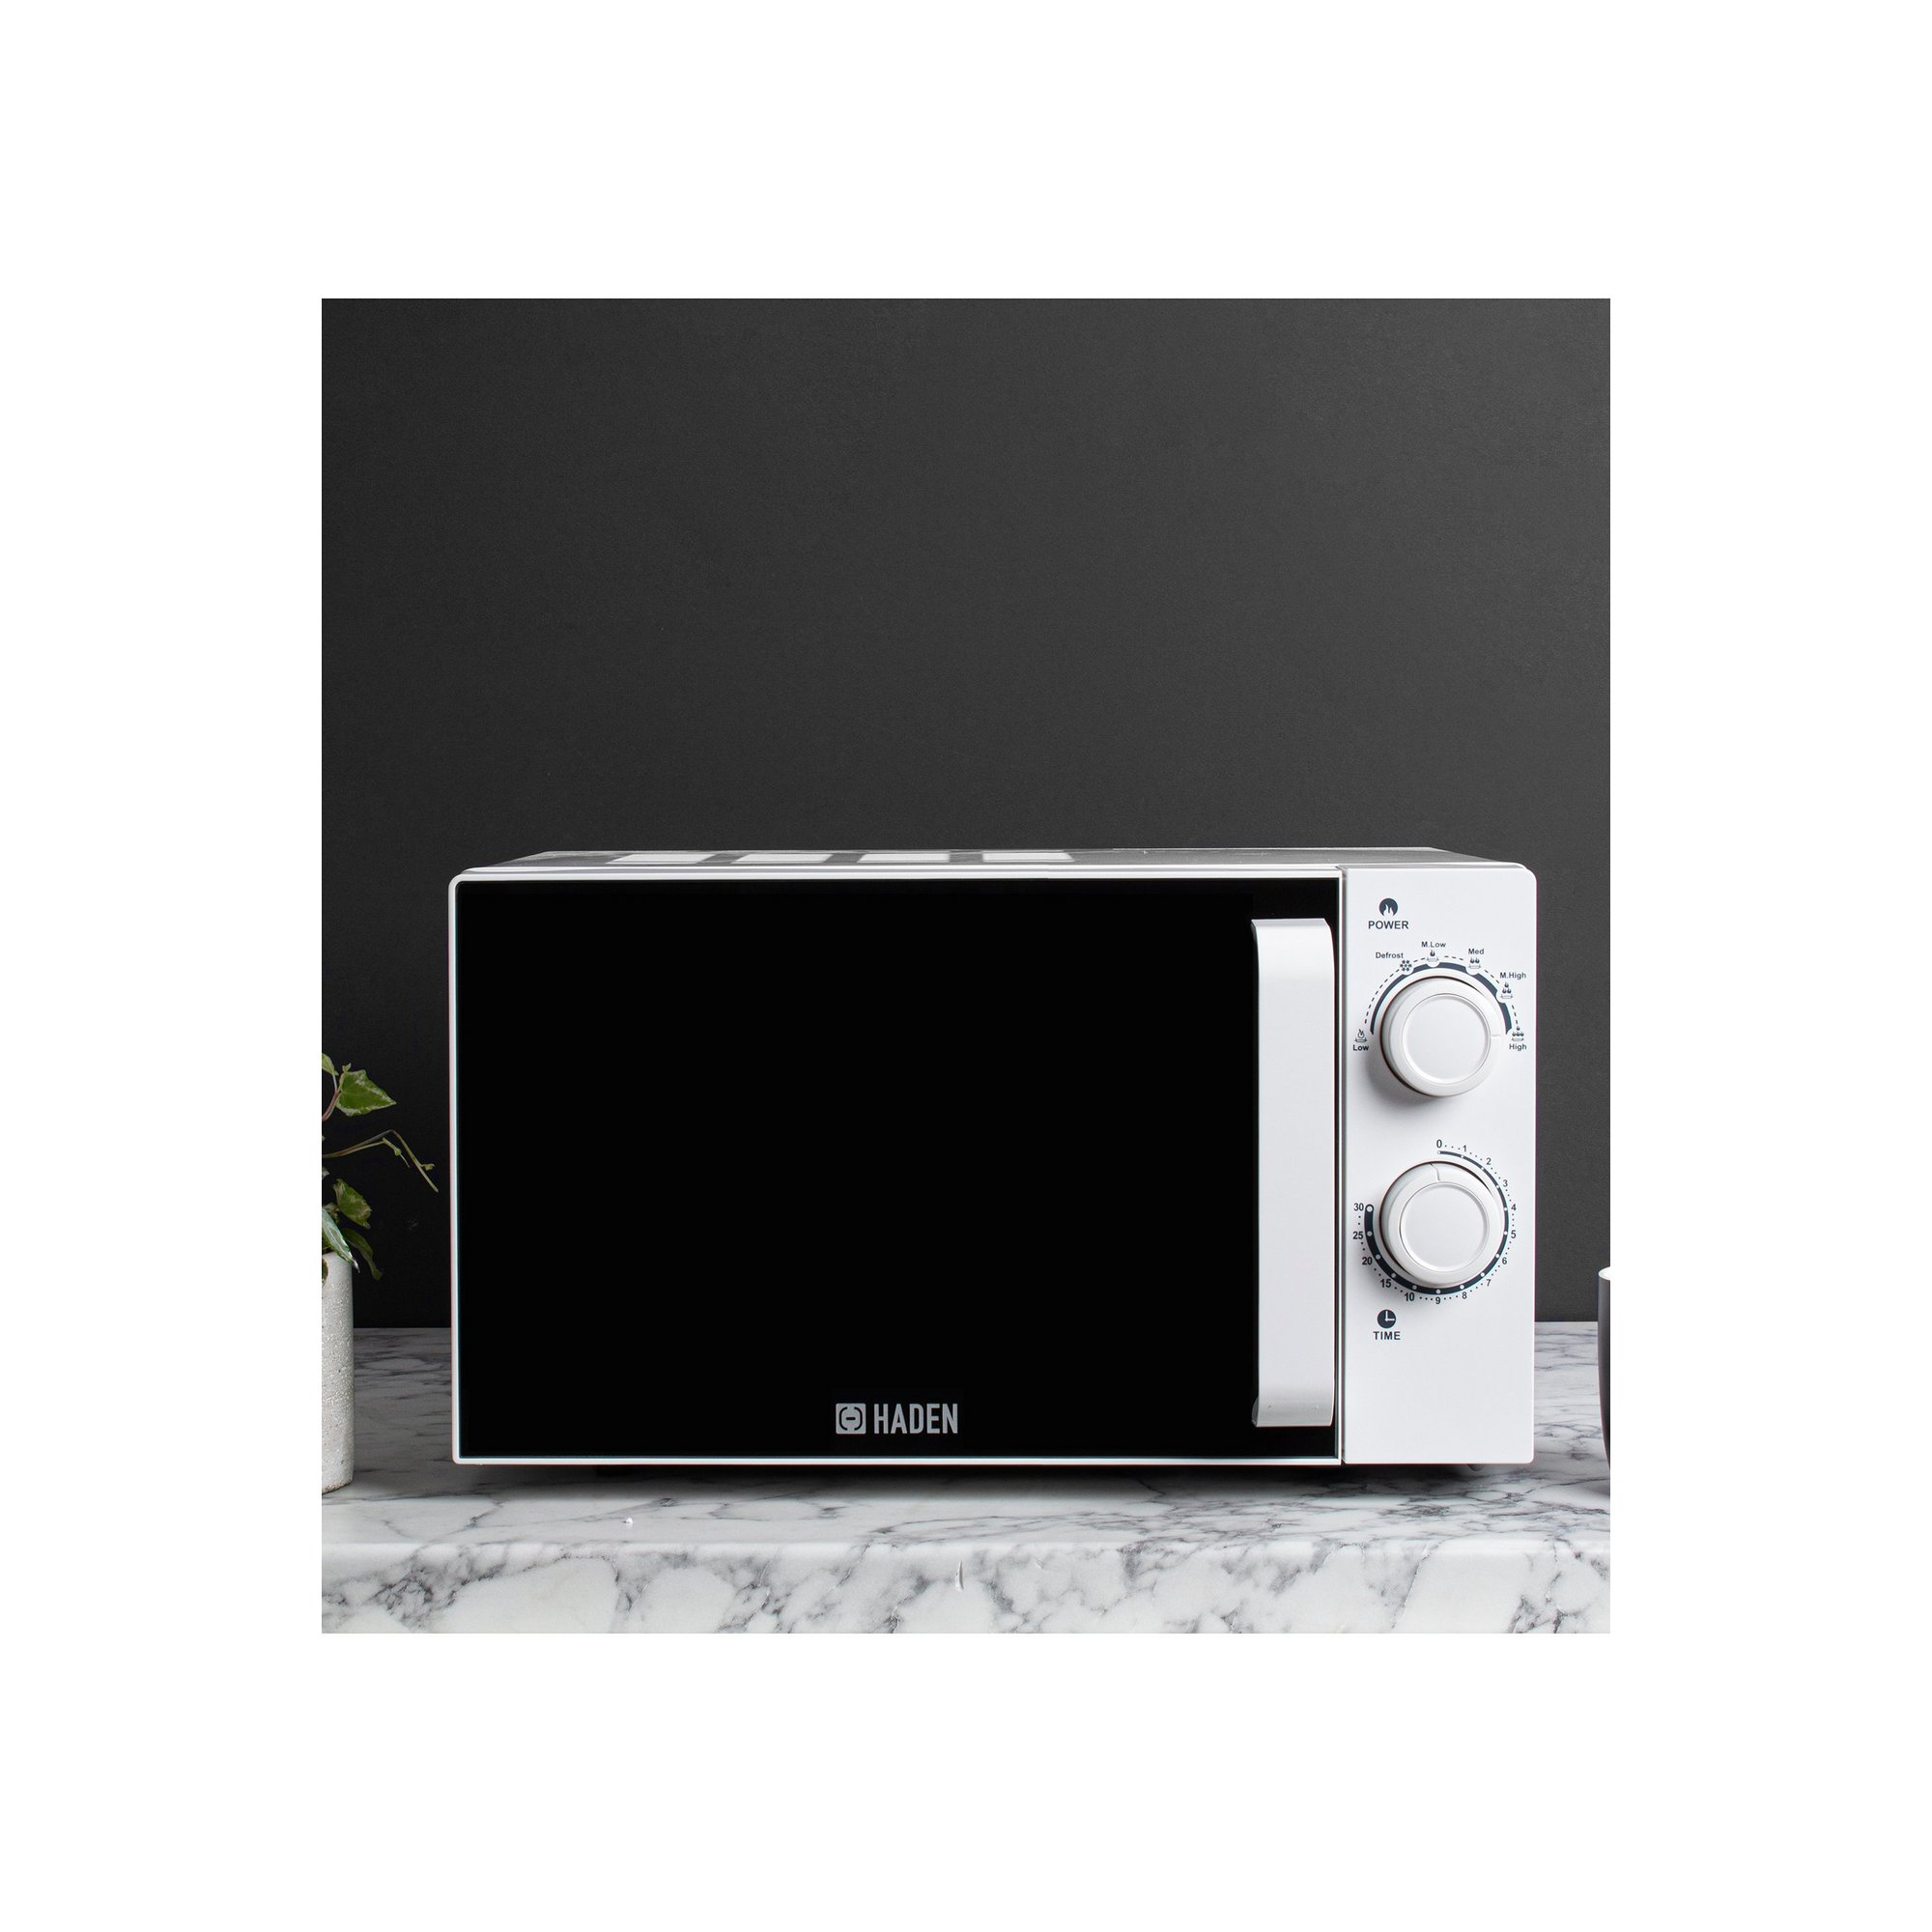 Image of Haden 20 Litre 700W Manual Microwave